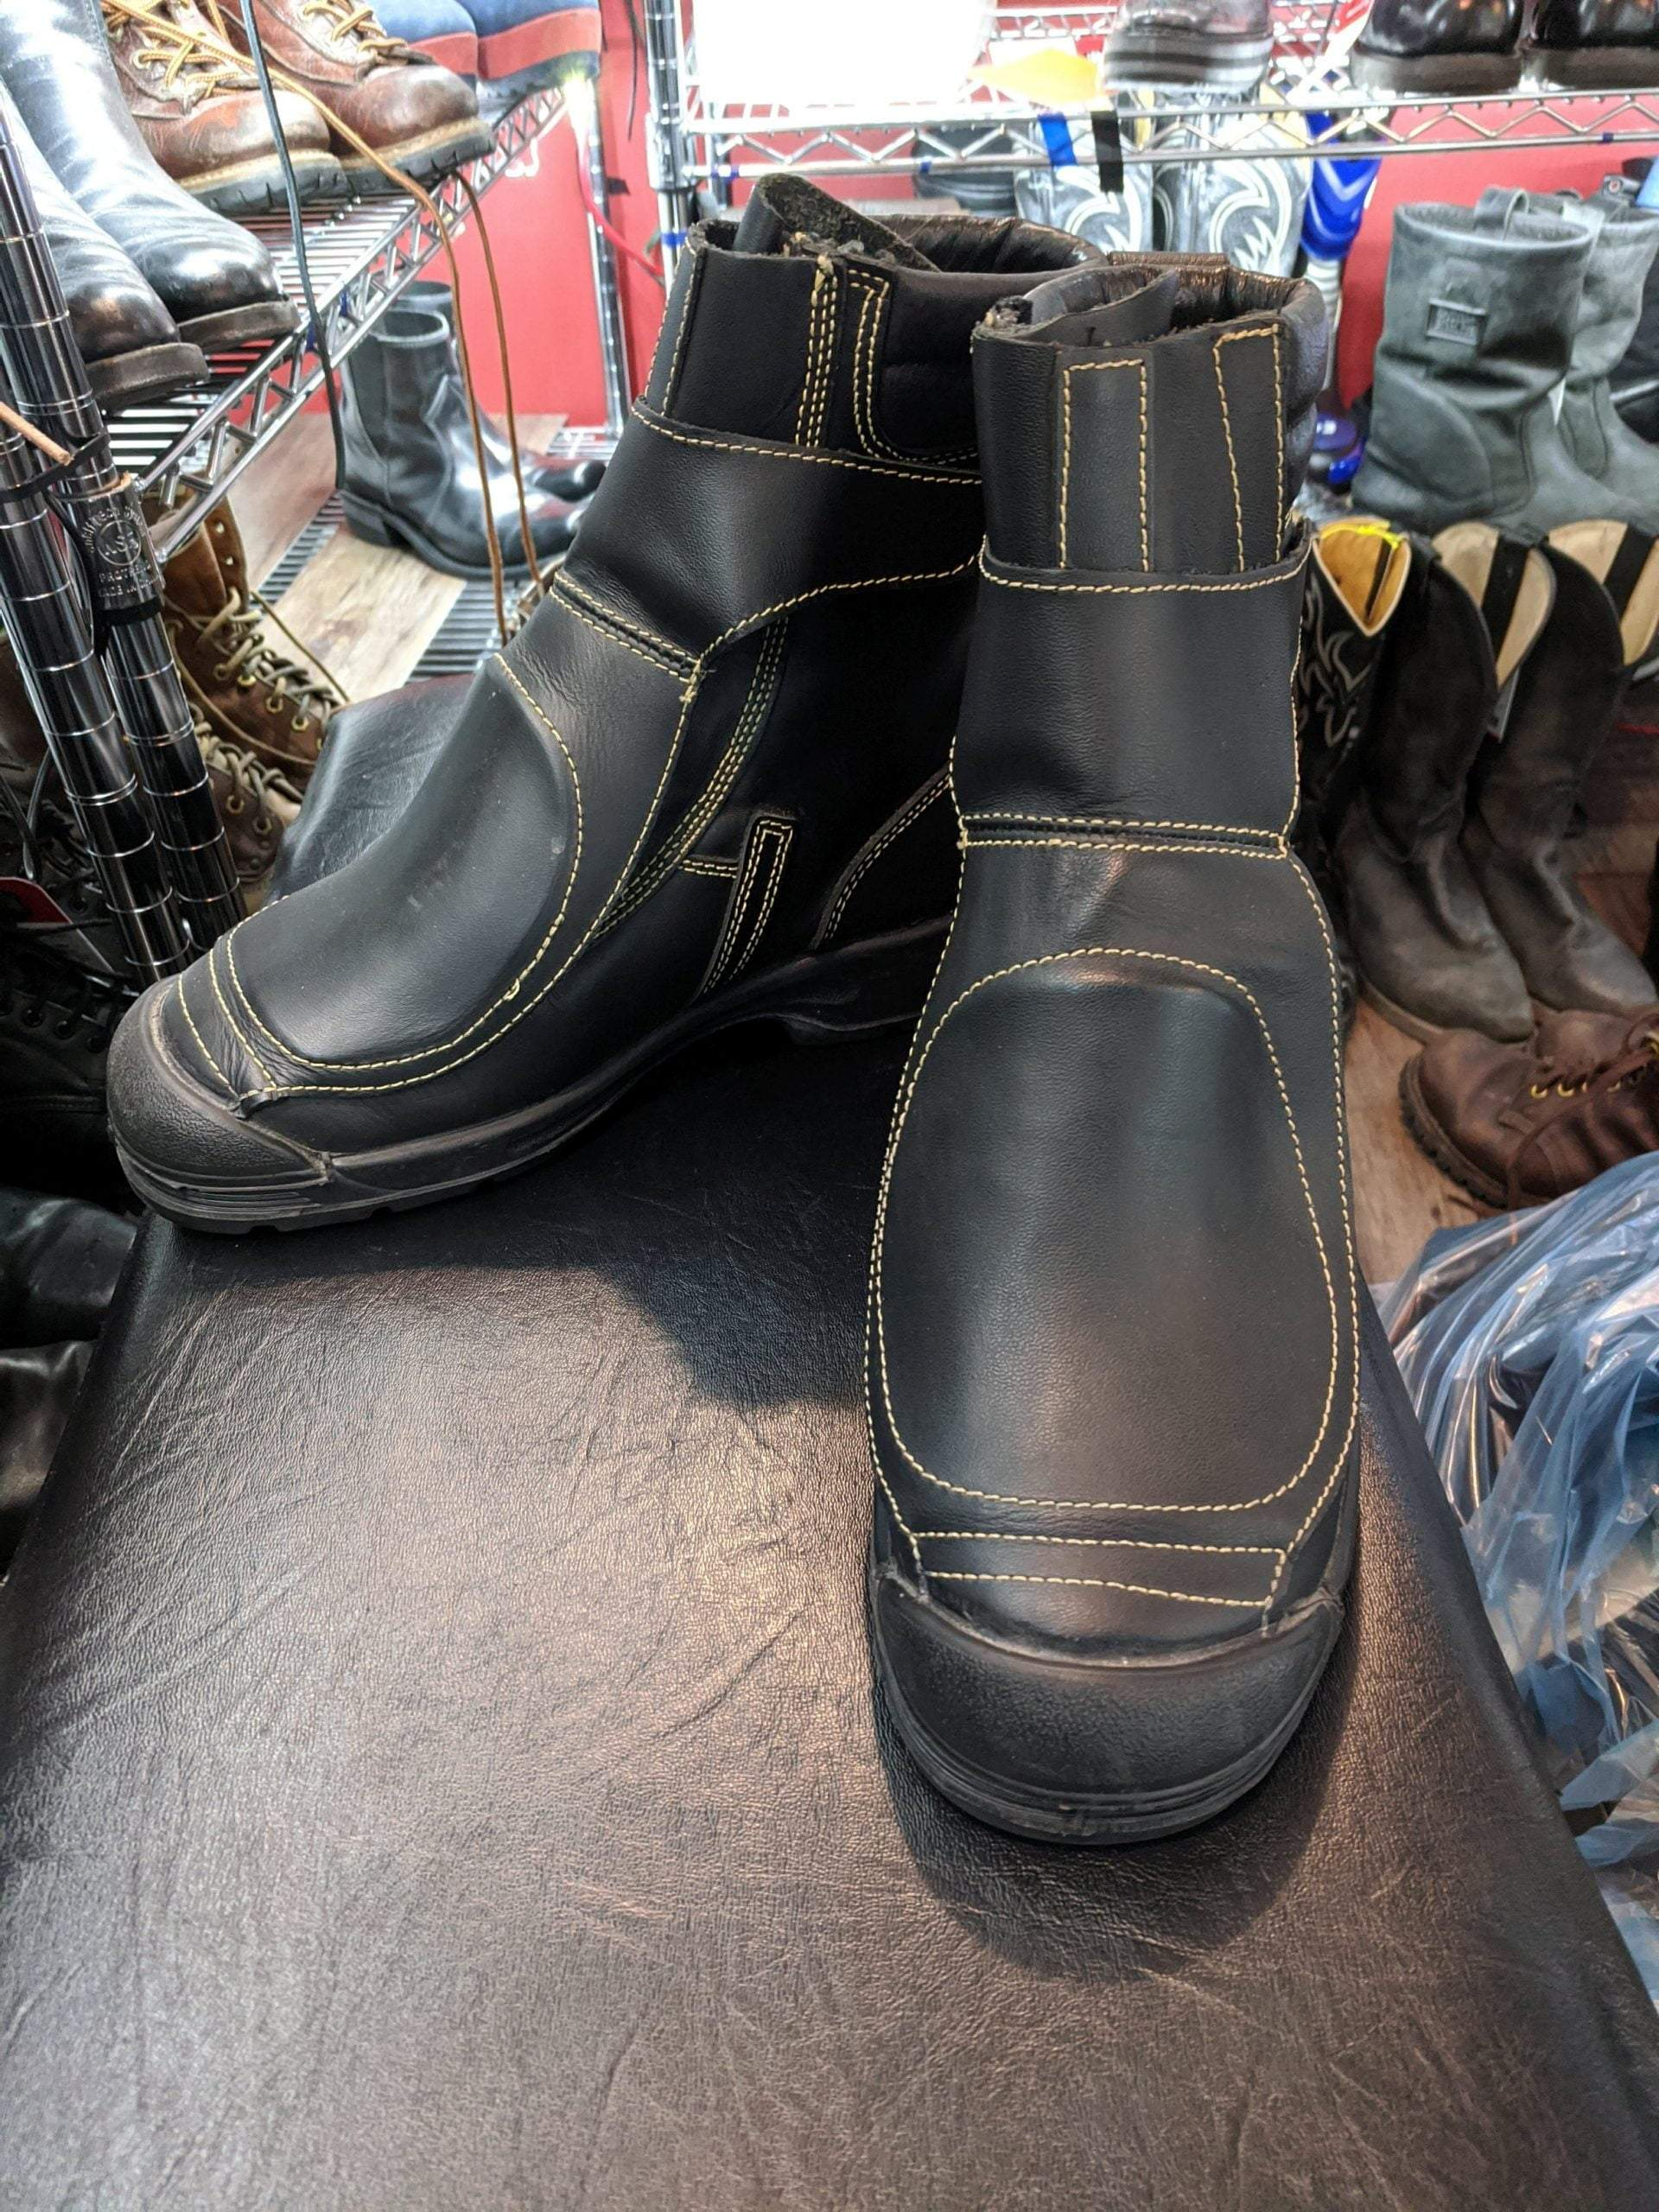 OLIVER Leather Welding BOOTS 19611    ( Size: Euro 39   men's 7   women's 8.5 )